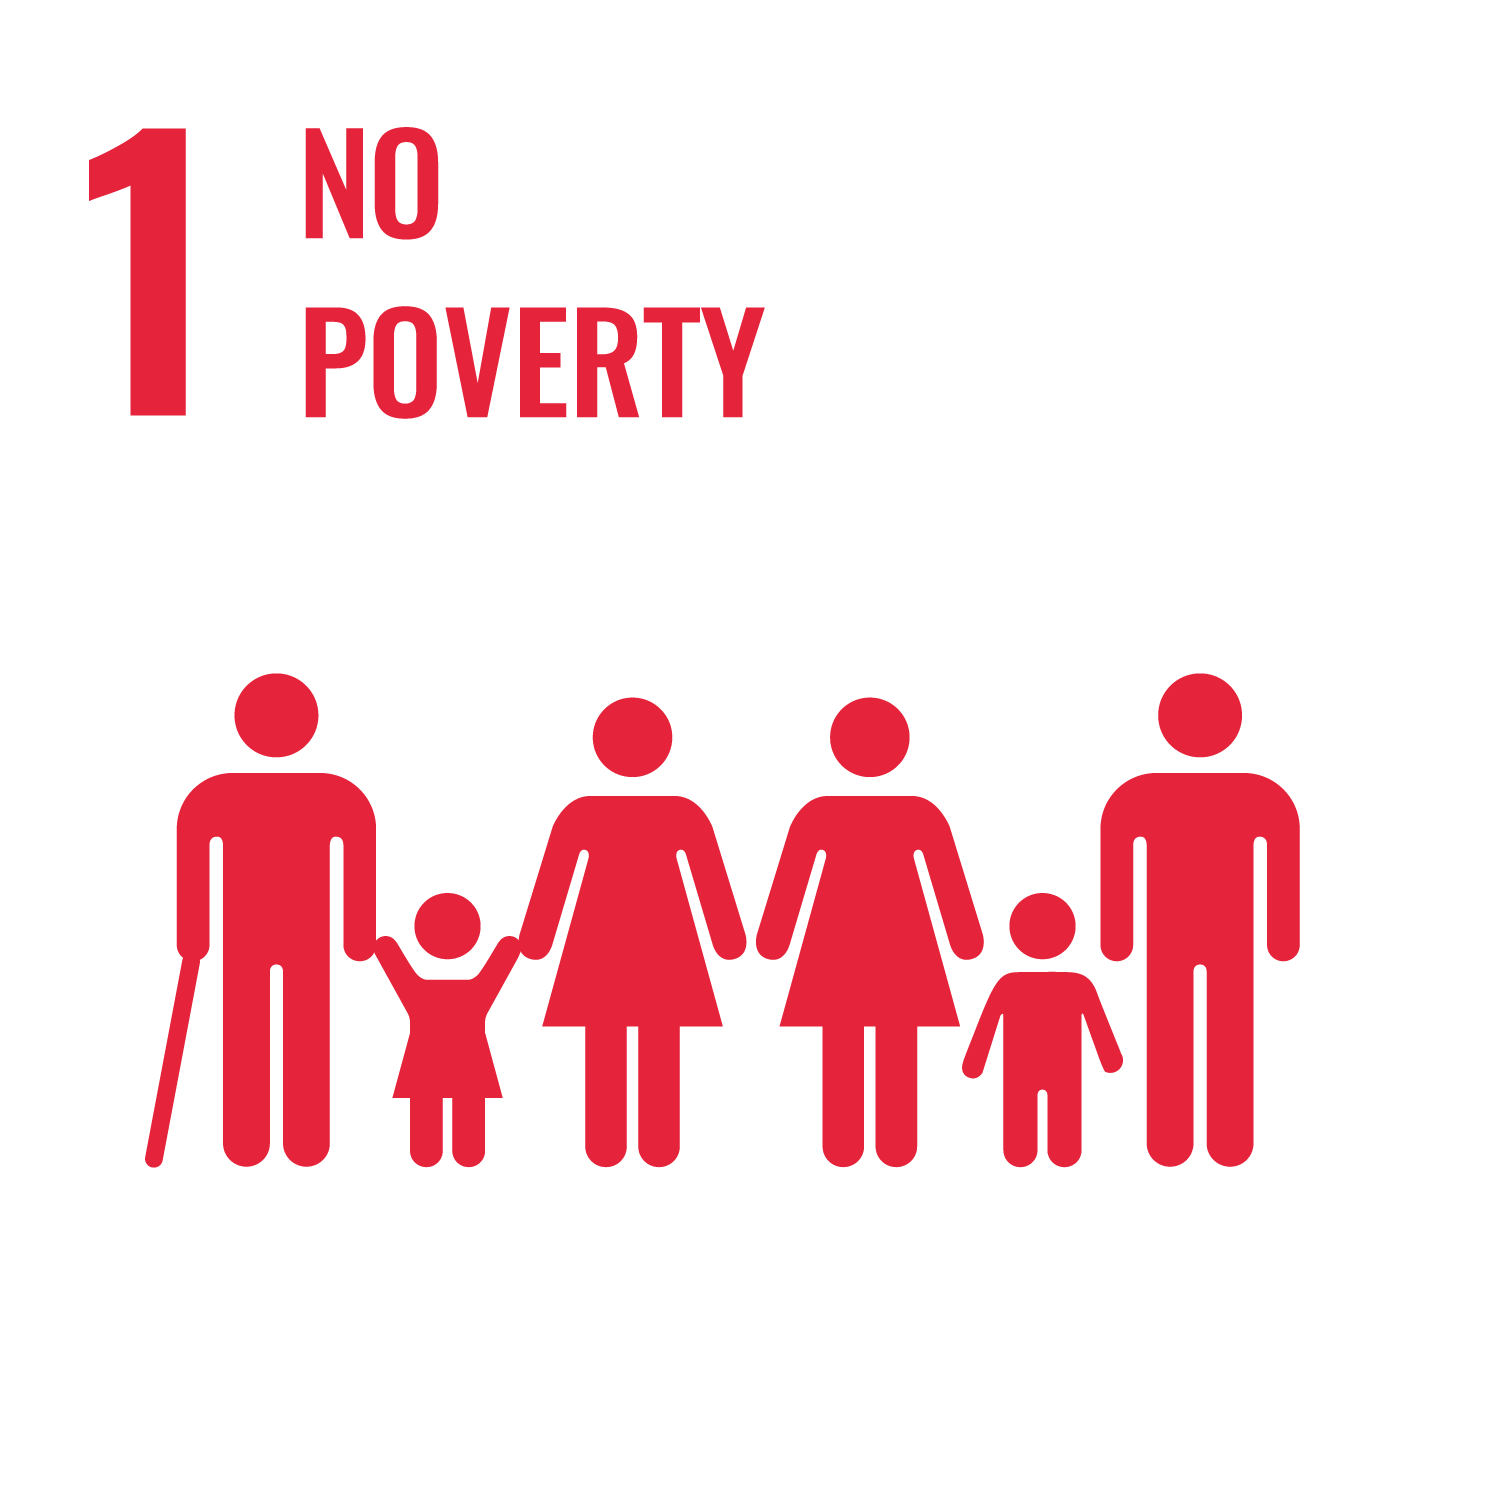 We support SDG 1 End to poverty in all its forms - …because we require fair and equitable sharing of benefits as well as company actions that contribute to local economic development.